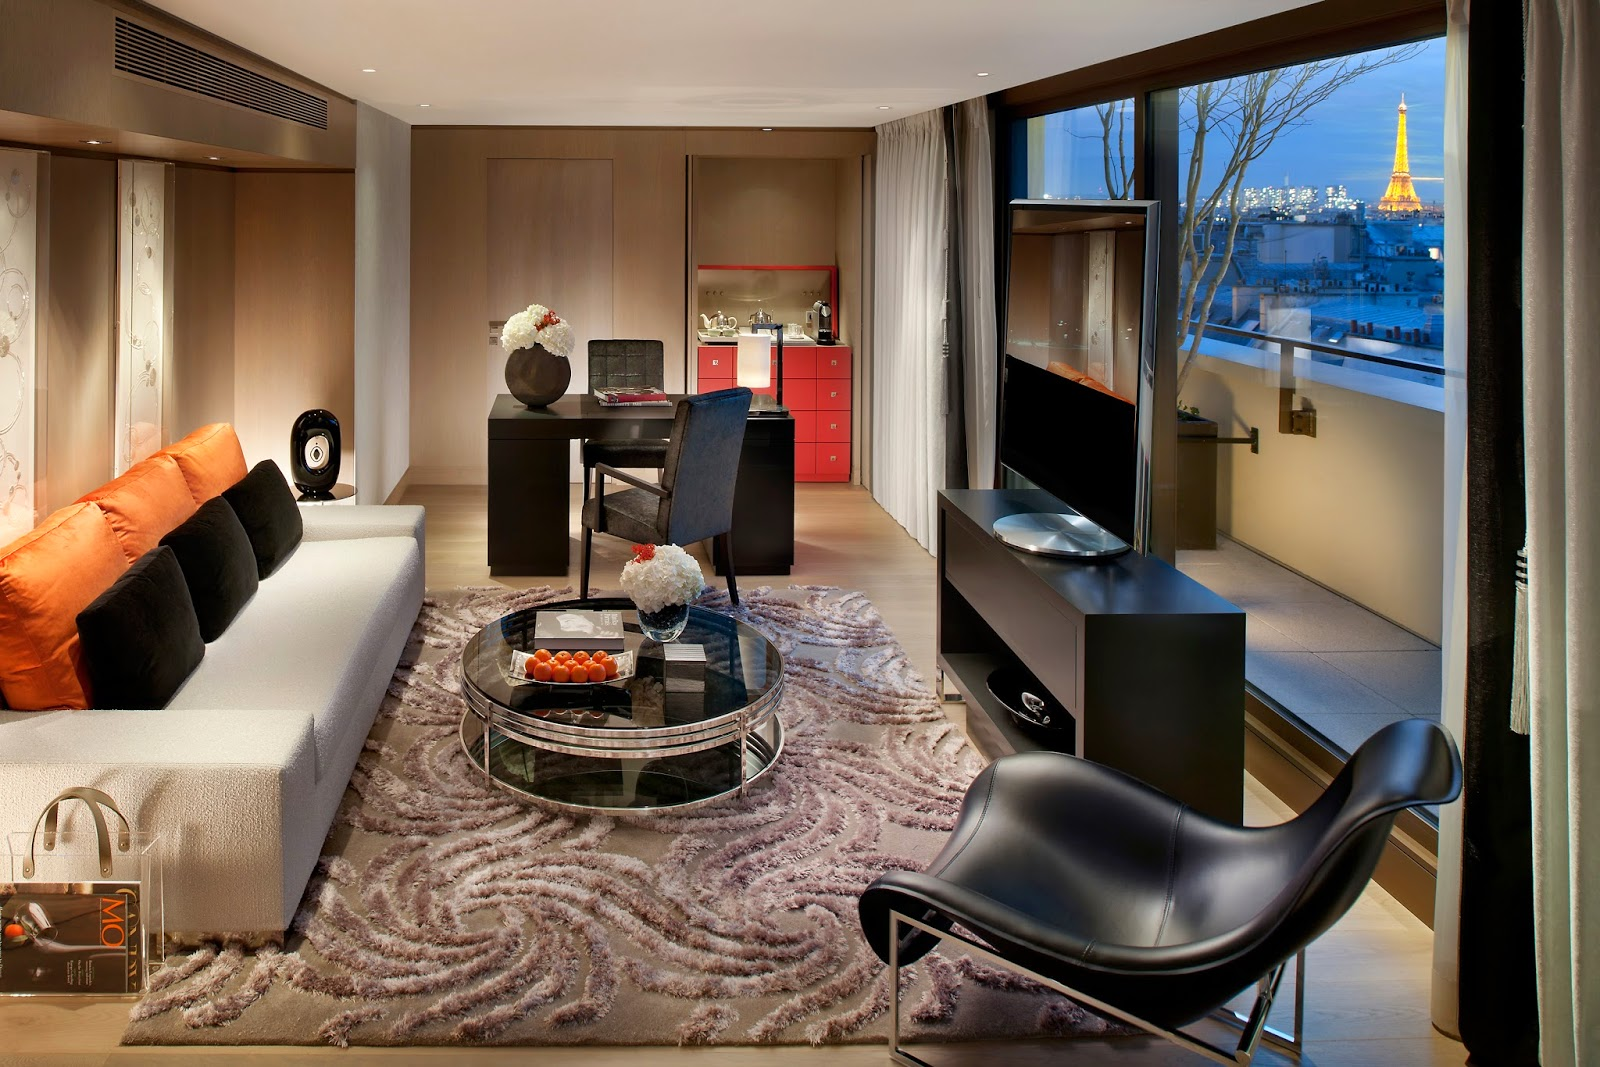 kee hua chee live mandarin oriental paris has just been awarded the highly coveted 39 palace. Black Bedroom Furniture Sets. Home Design Ideas